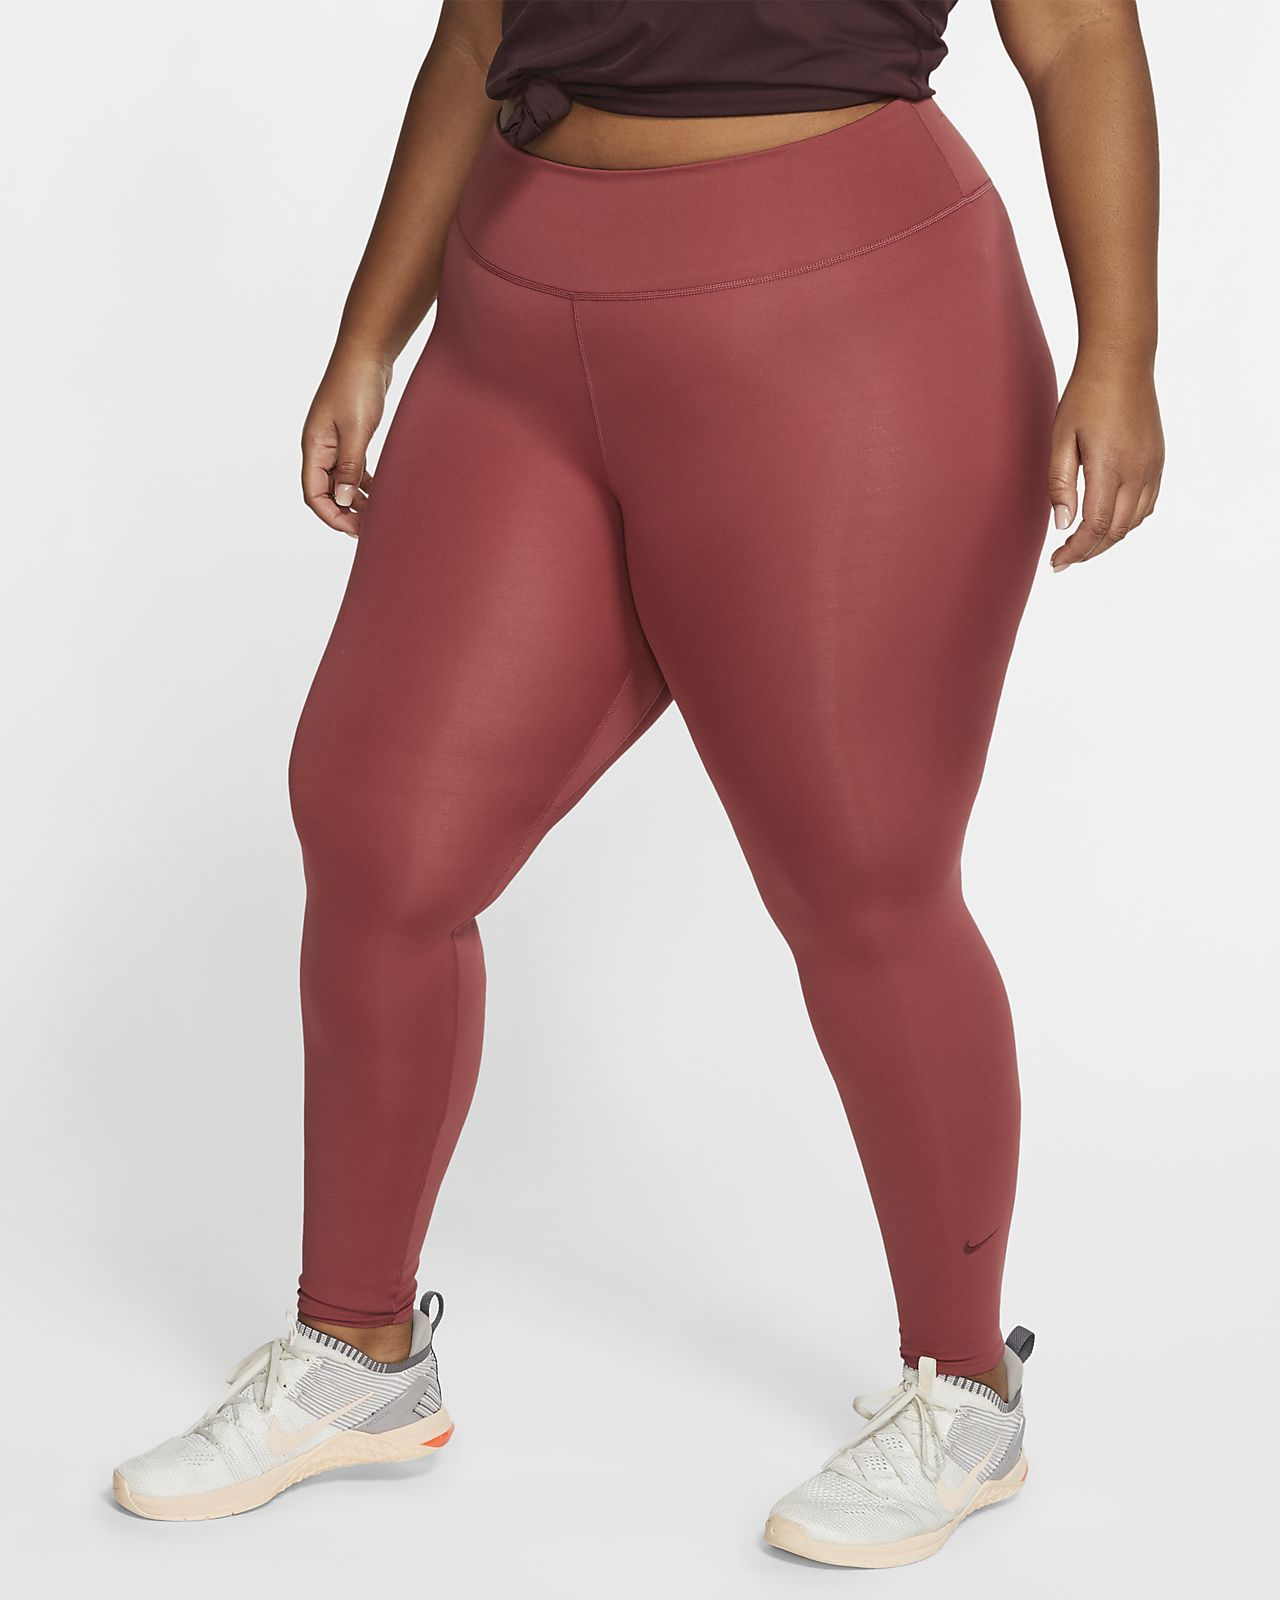 Nike One Luxe Malles (talles grans) - Dona